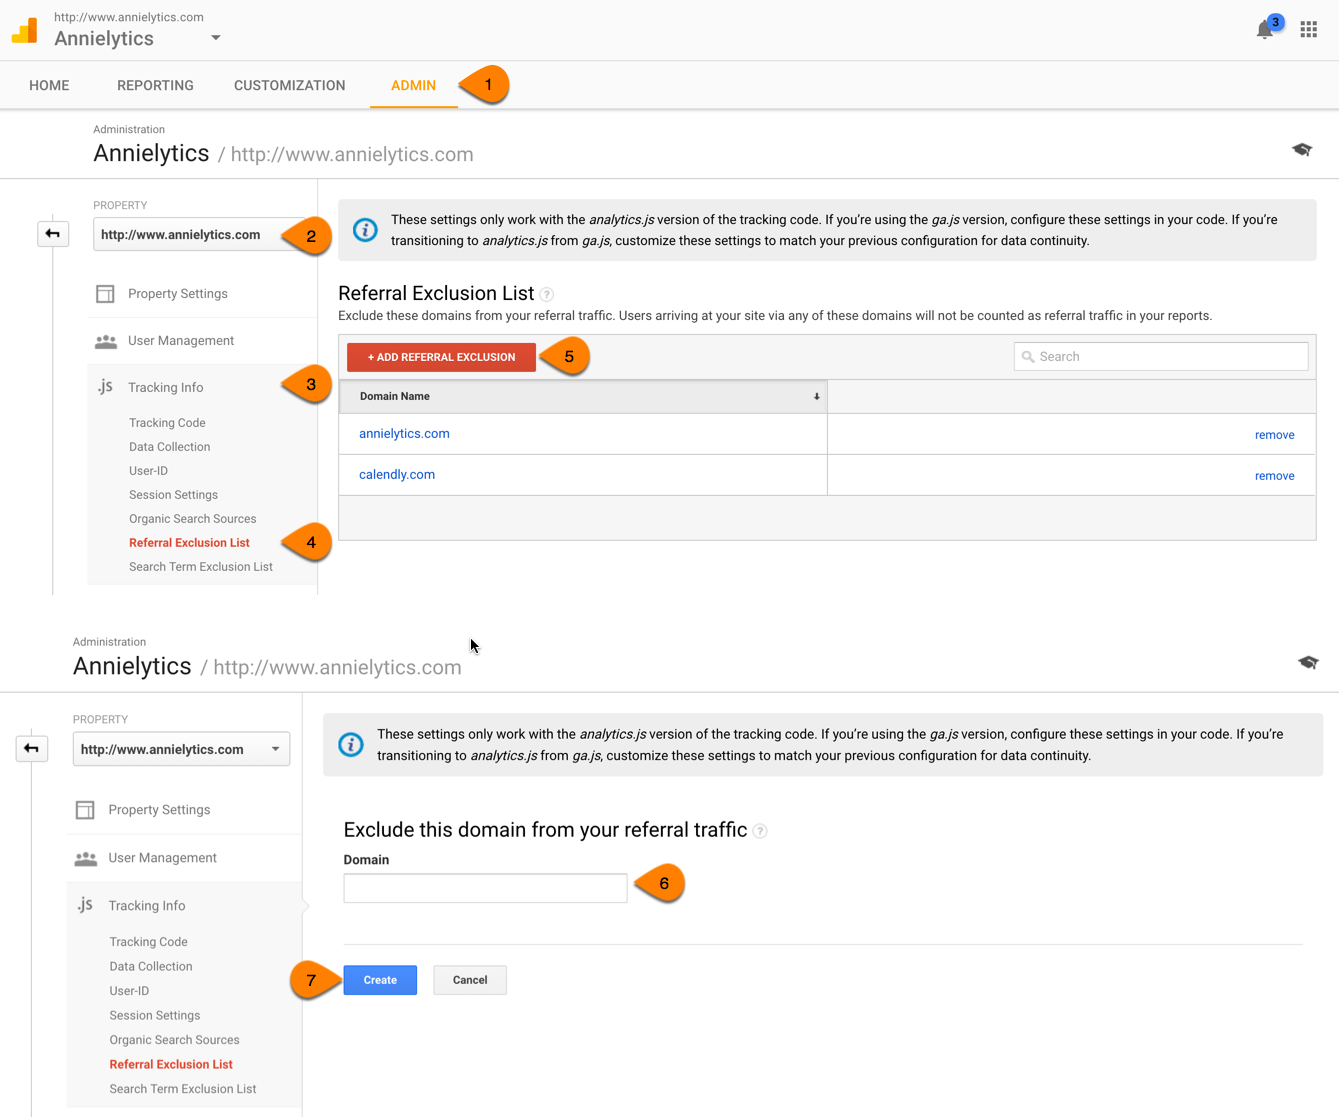 Referral Exclusion List in Google Analytics Explained